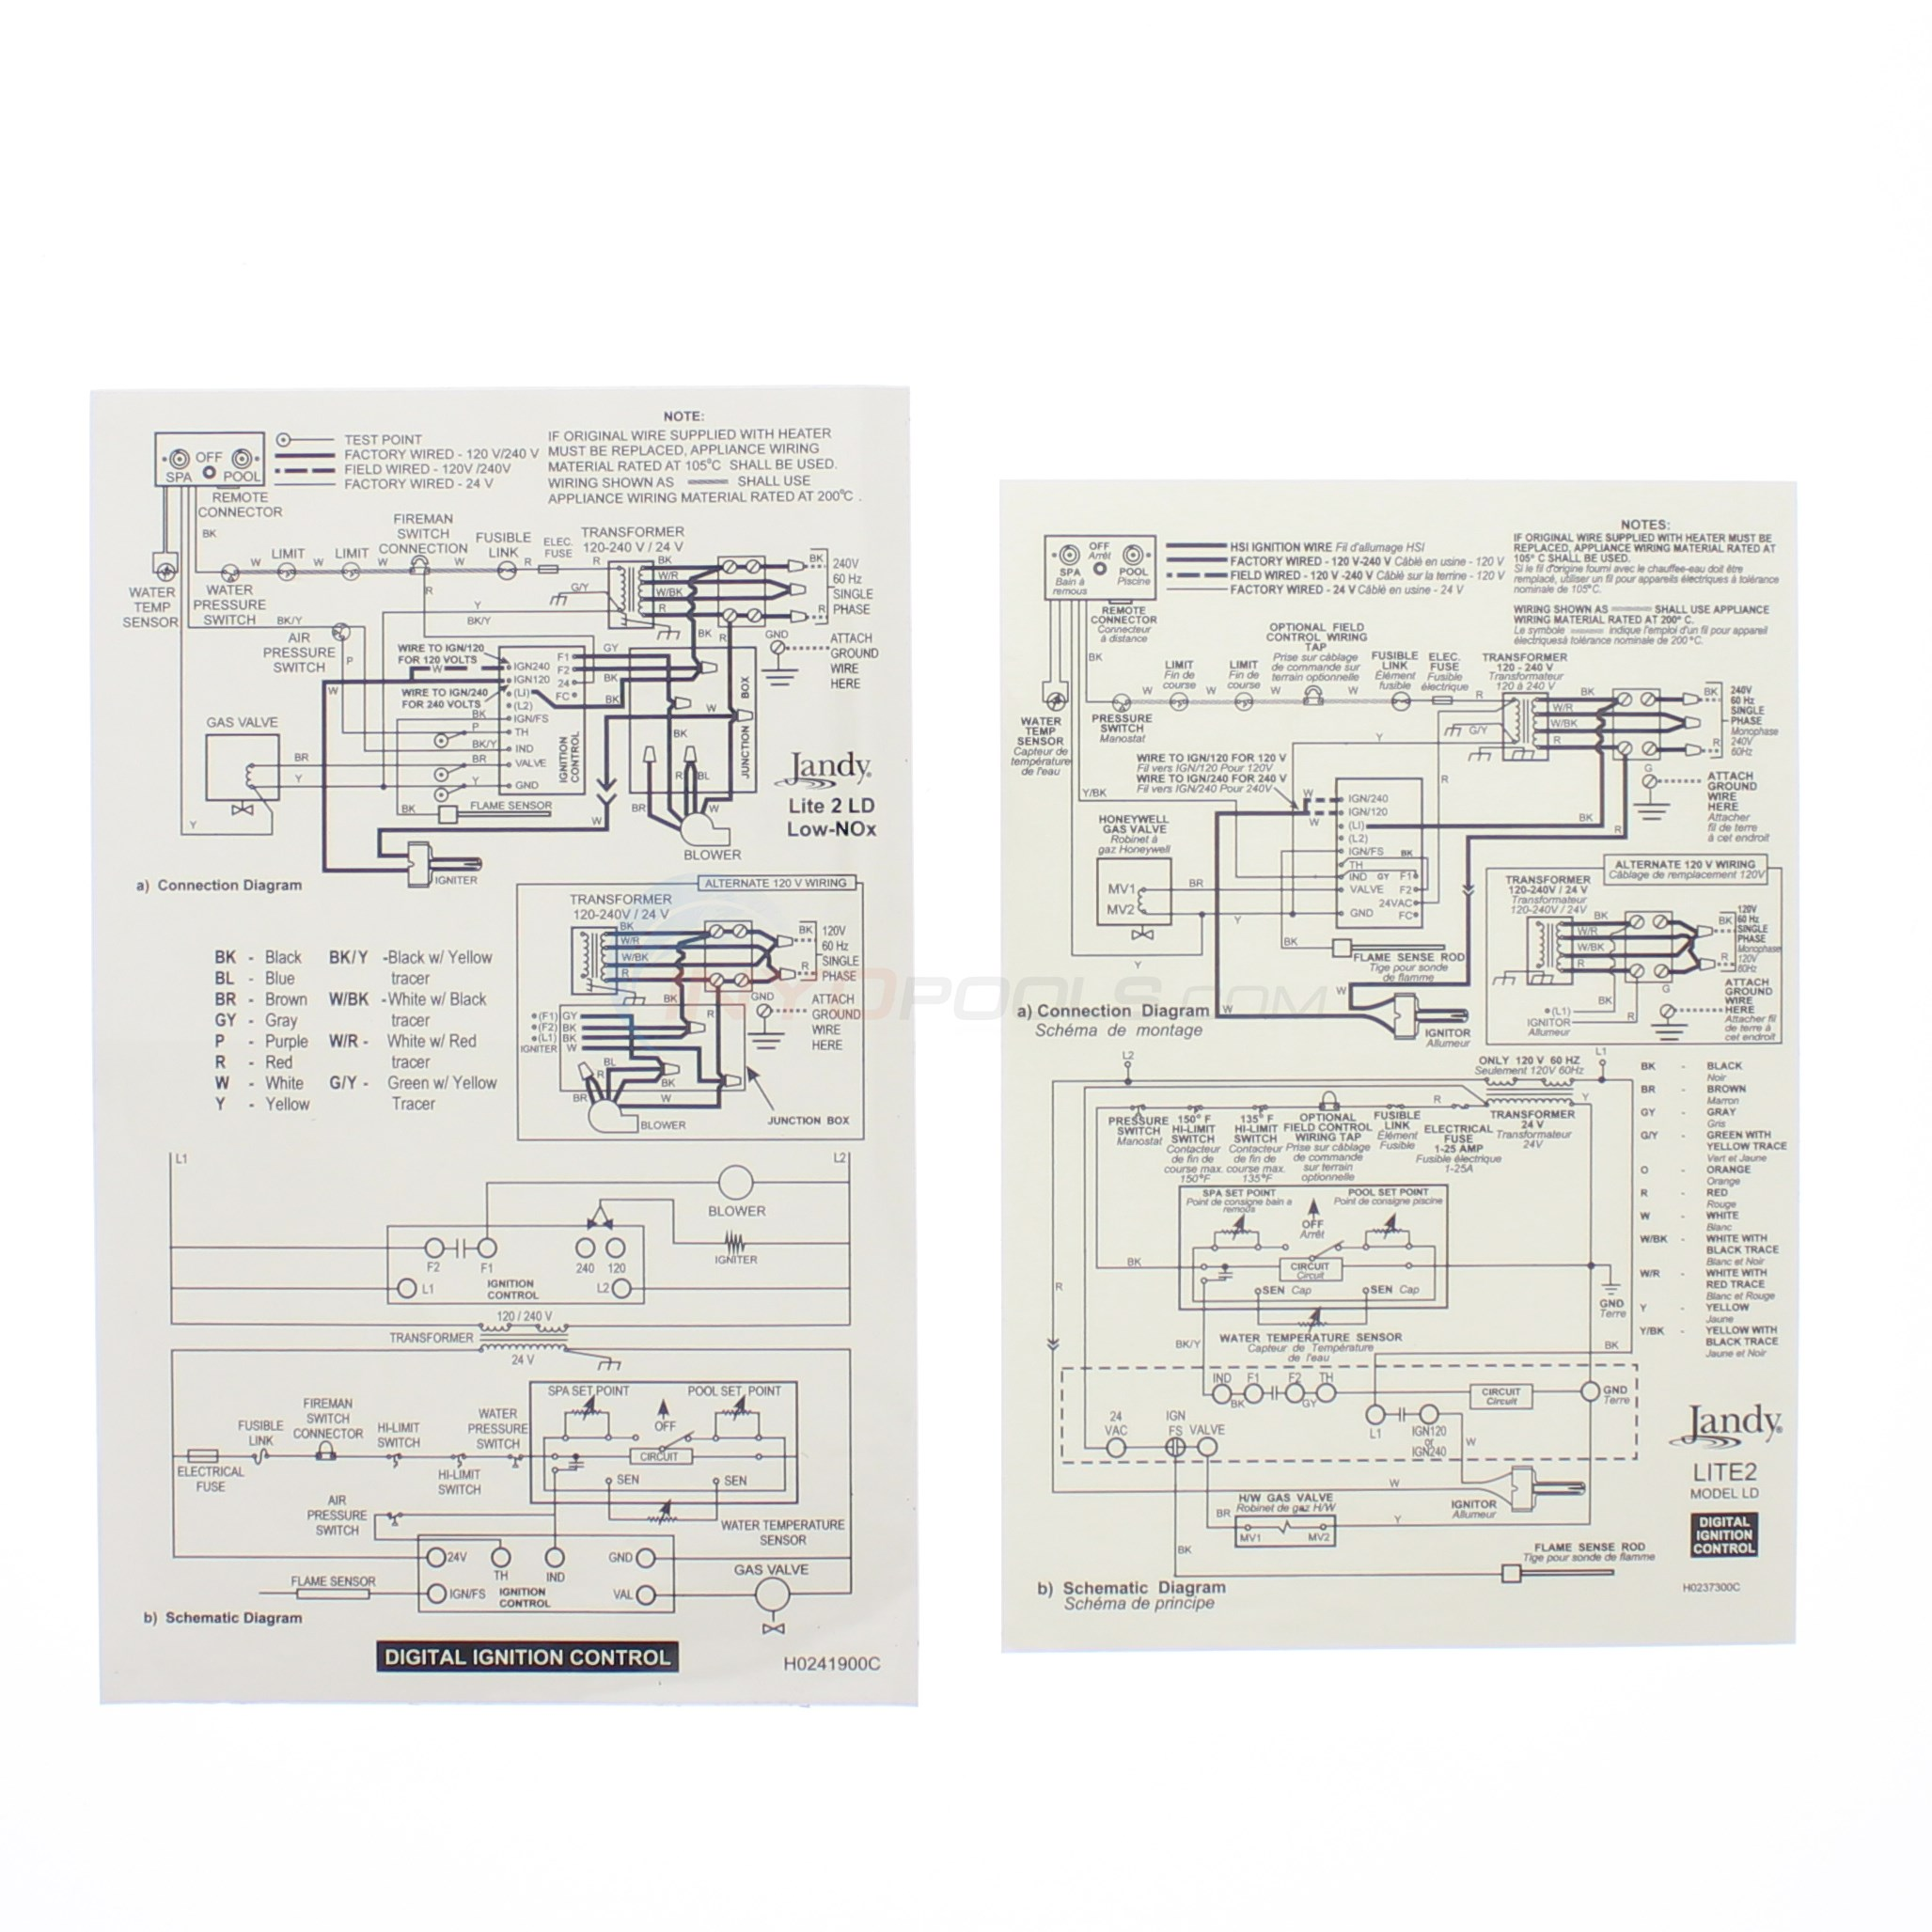 zodiac 6200 0301?format=jpg&scale=both&anchor=middlecenter&autorotate=true&mode=pad&width=650&height=650 zodiac ignition control assembly (r0408100) inyopools com fenwal ignition module wiring diagram at edmiracle.co